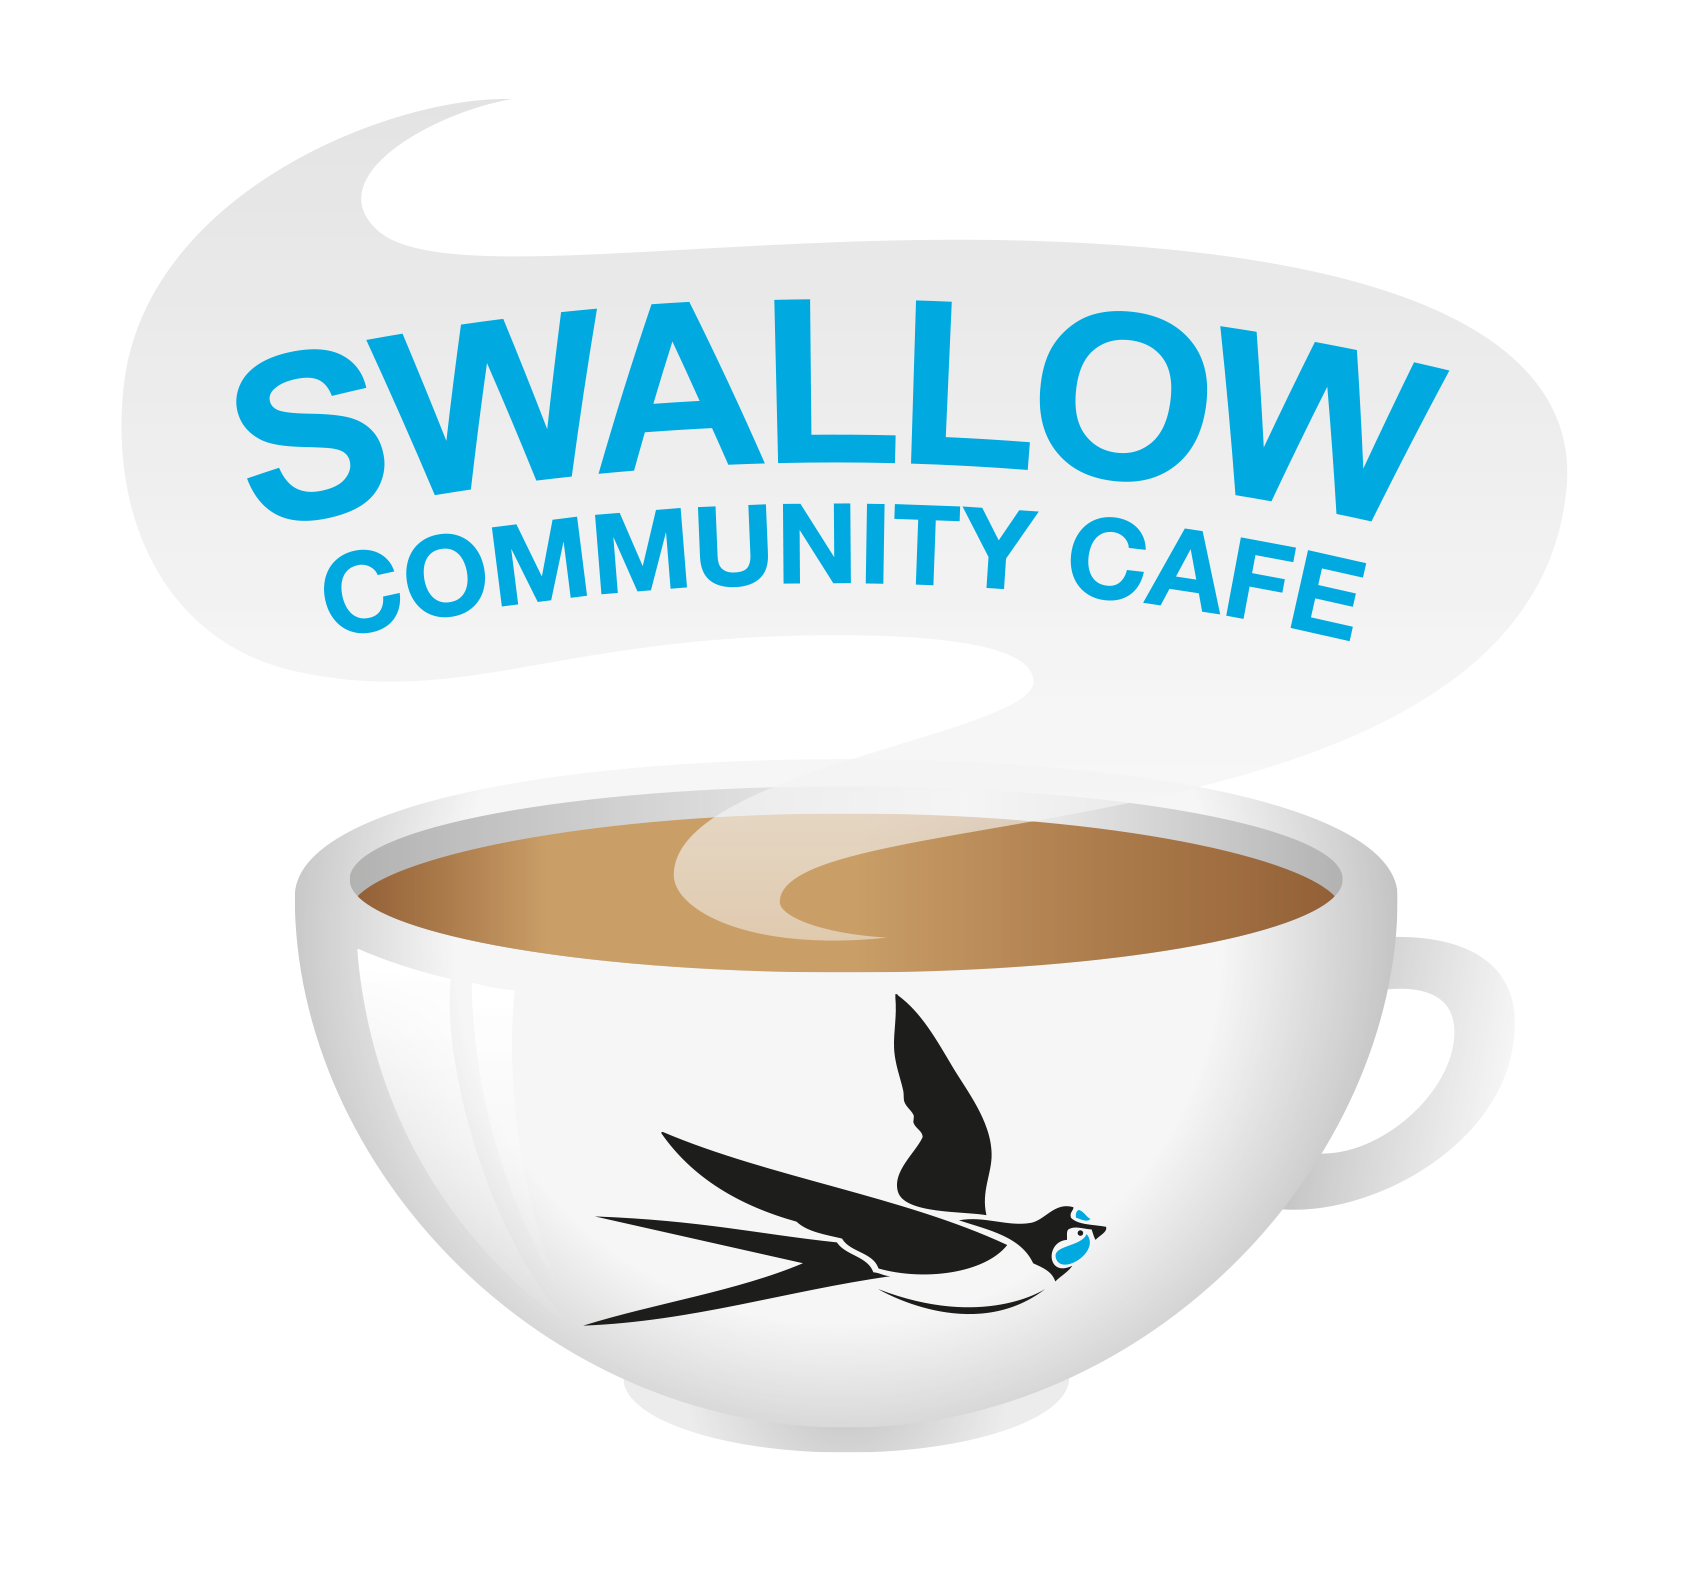 Our new SWALLOW Community Cafe is now open at the St Nicholas Church Centre, Radstock, BA3 3QG on Wednesday and Friday 11am-3pm.  For more information follow us on www.twitter.com/SWALLOWCharity or www.facebook.com/SouthWestAction www.swallowcharity.org